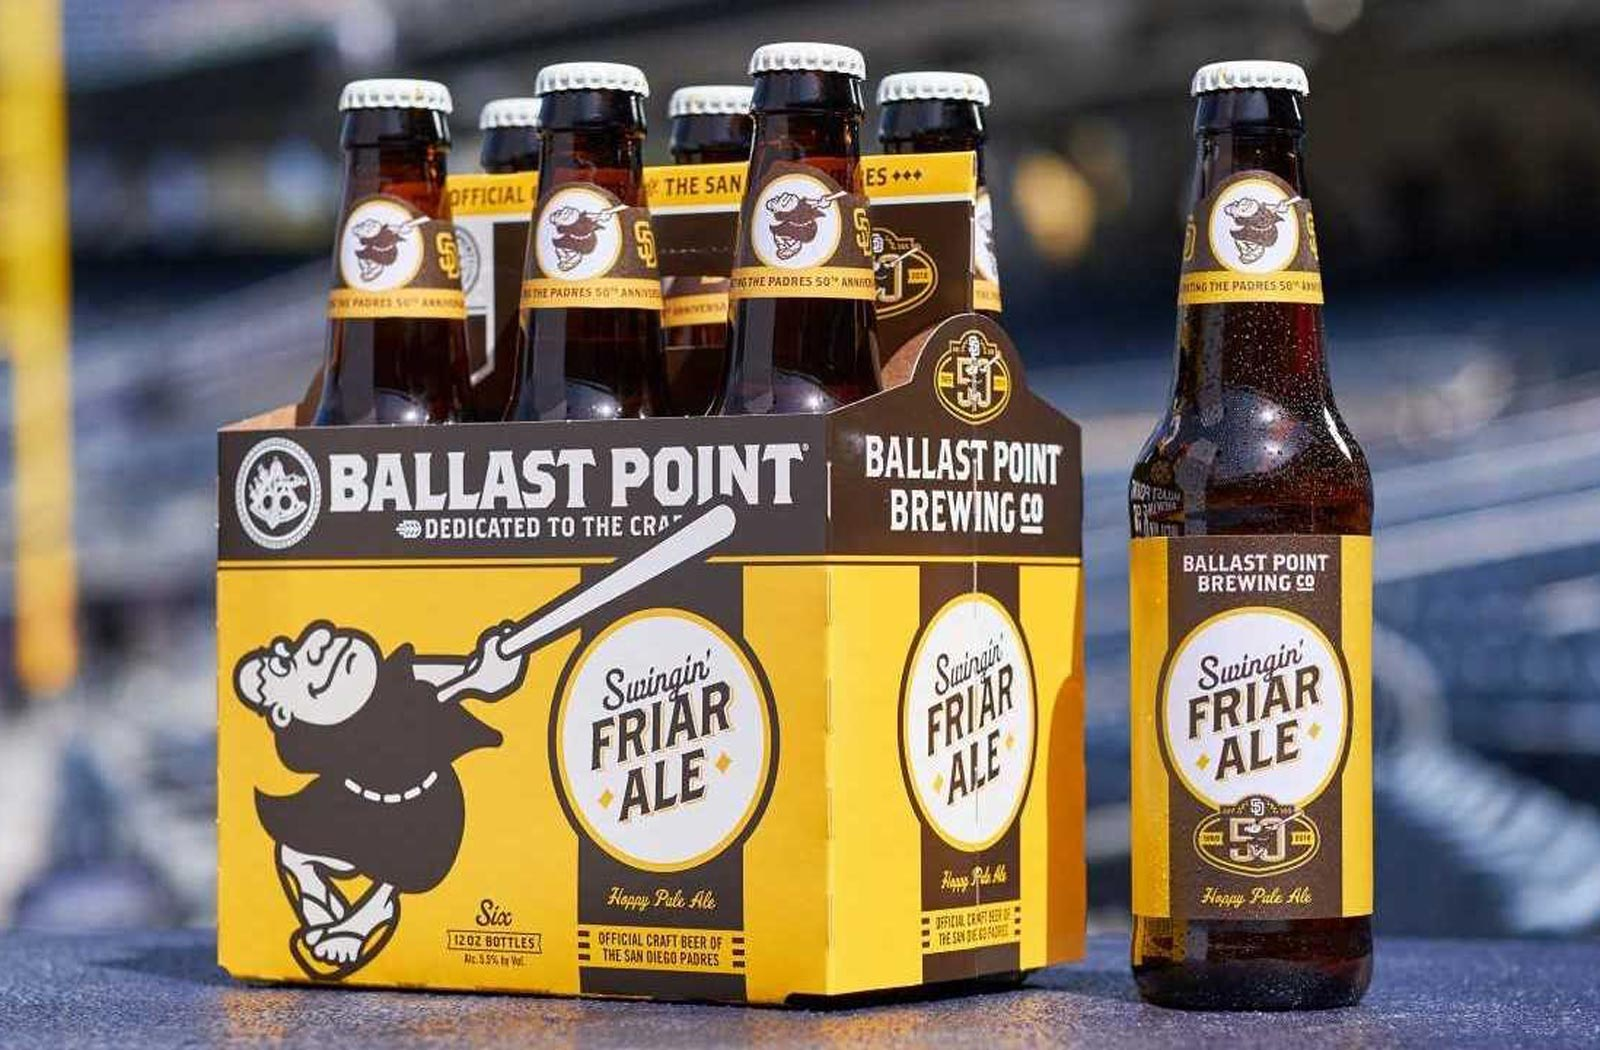 Swinging Friar Ale - San Diego Padres themed Beer